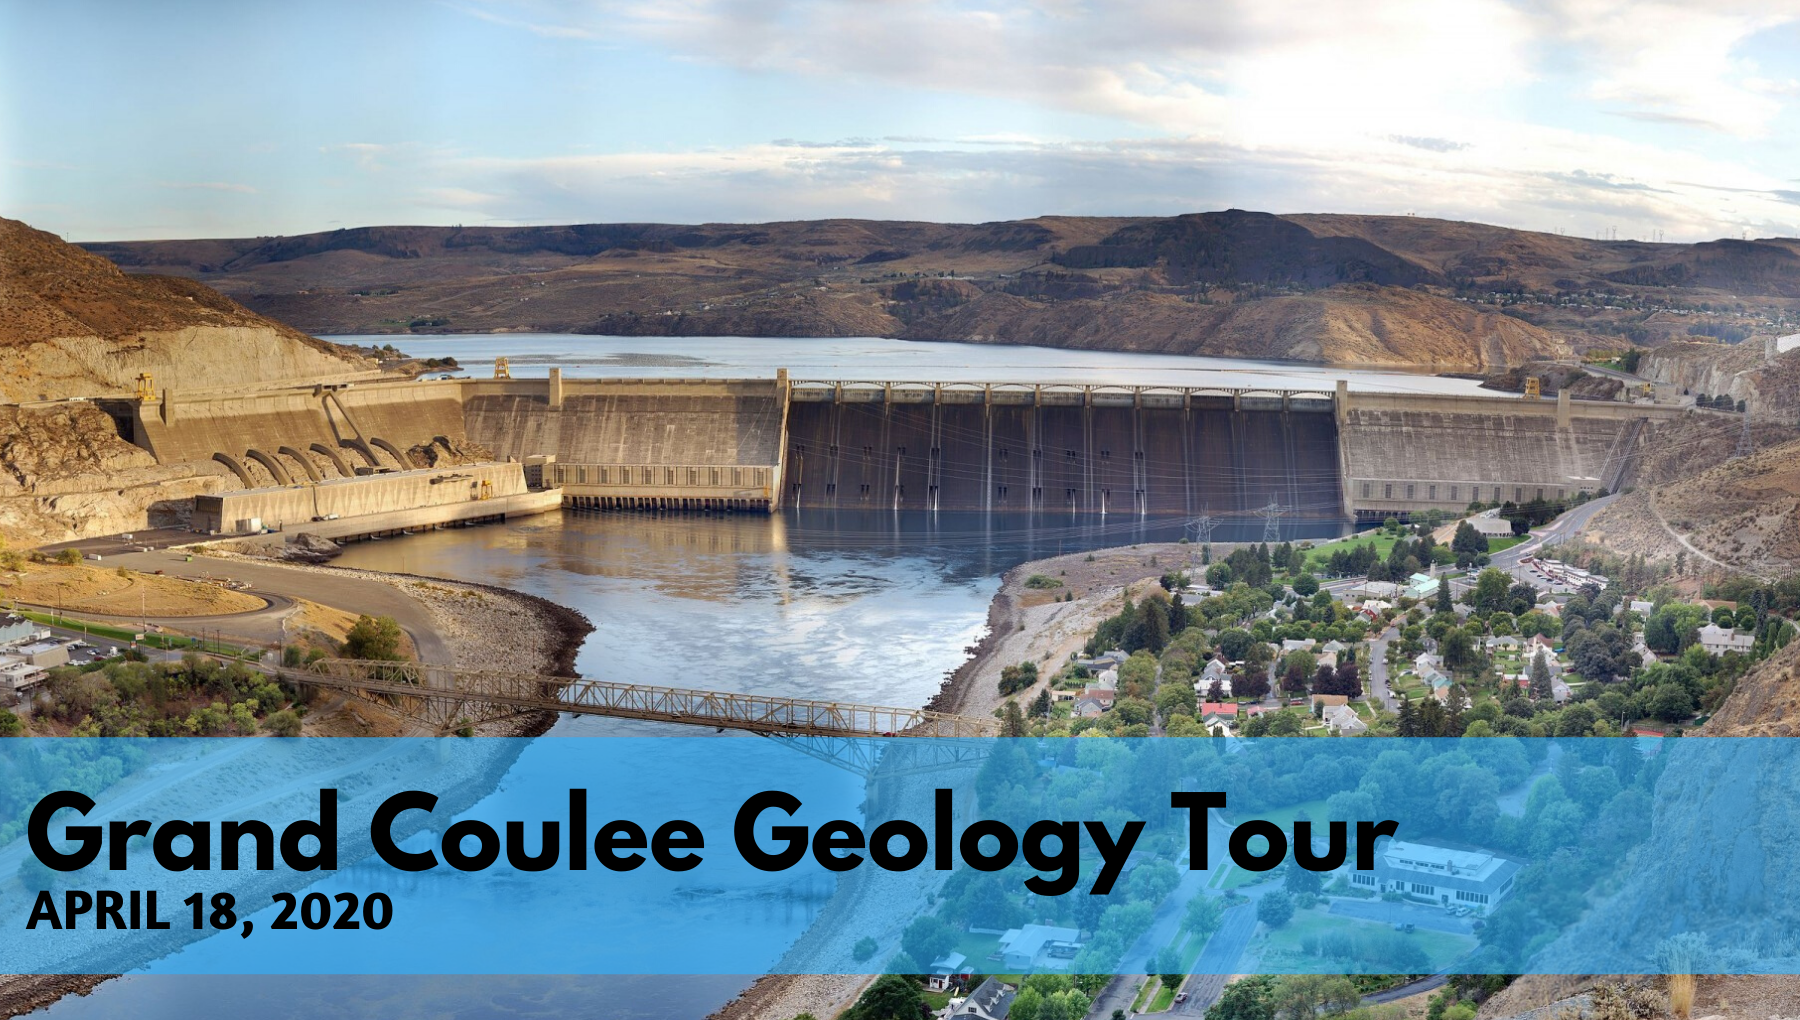 Grand Coulee Geology Tour